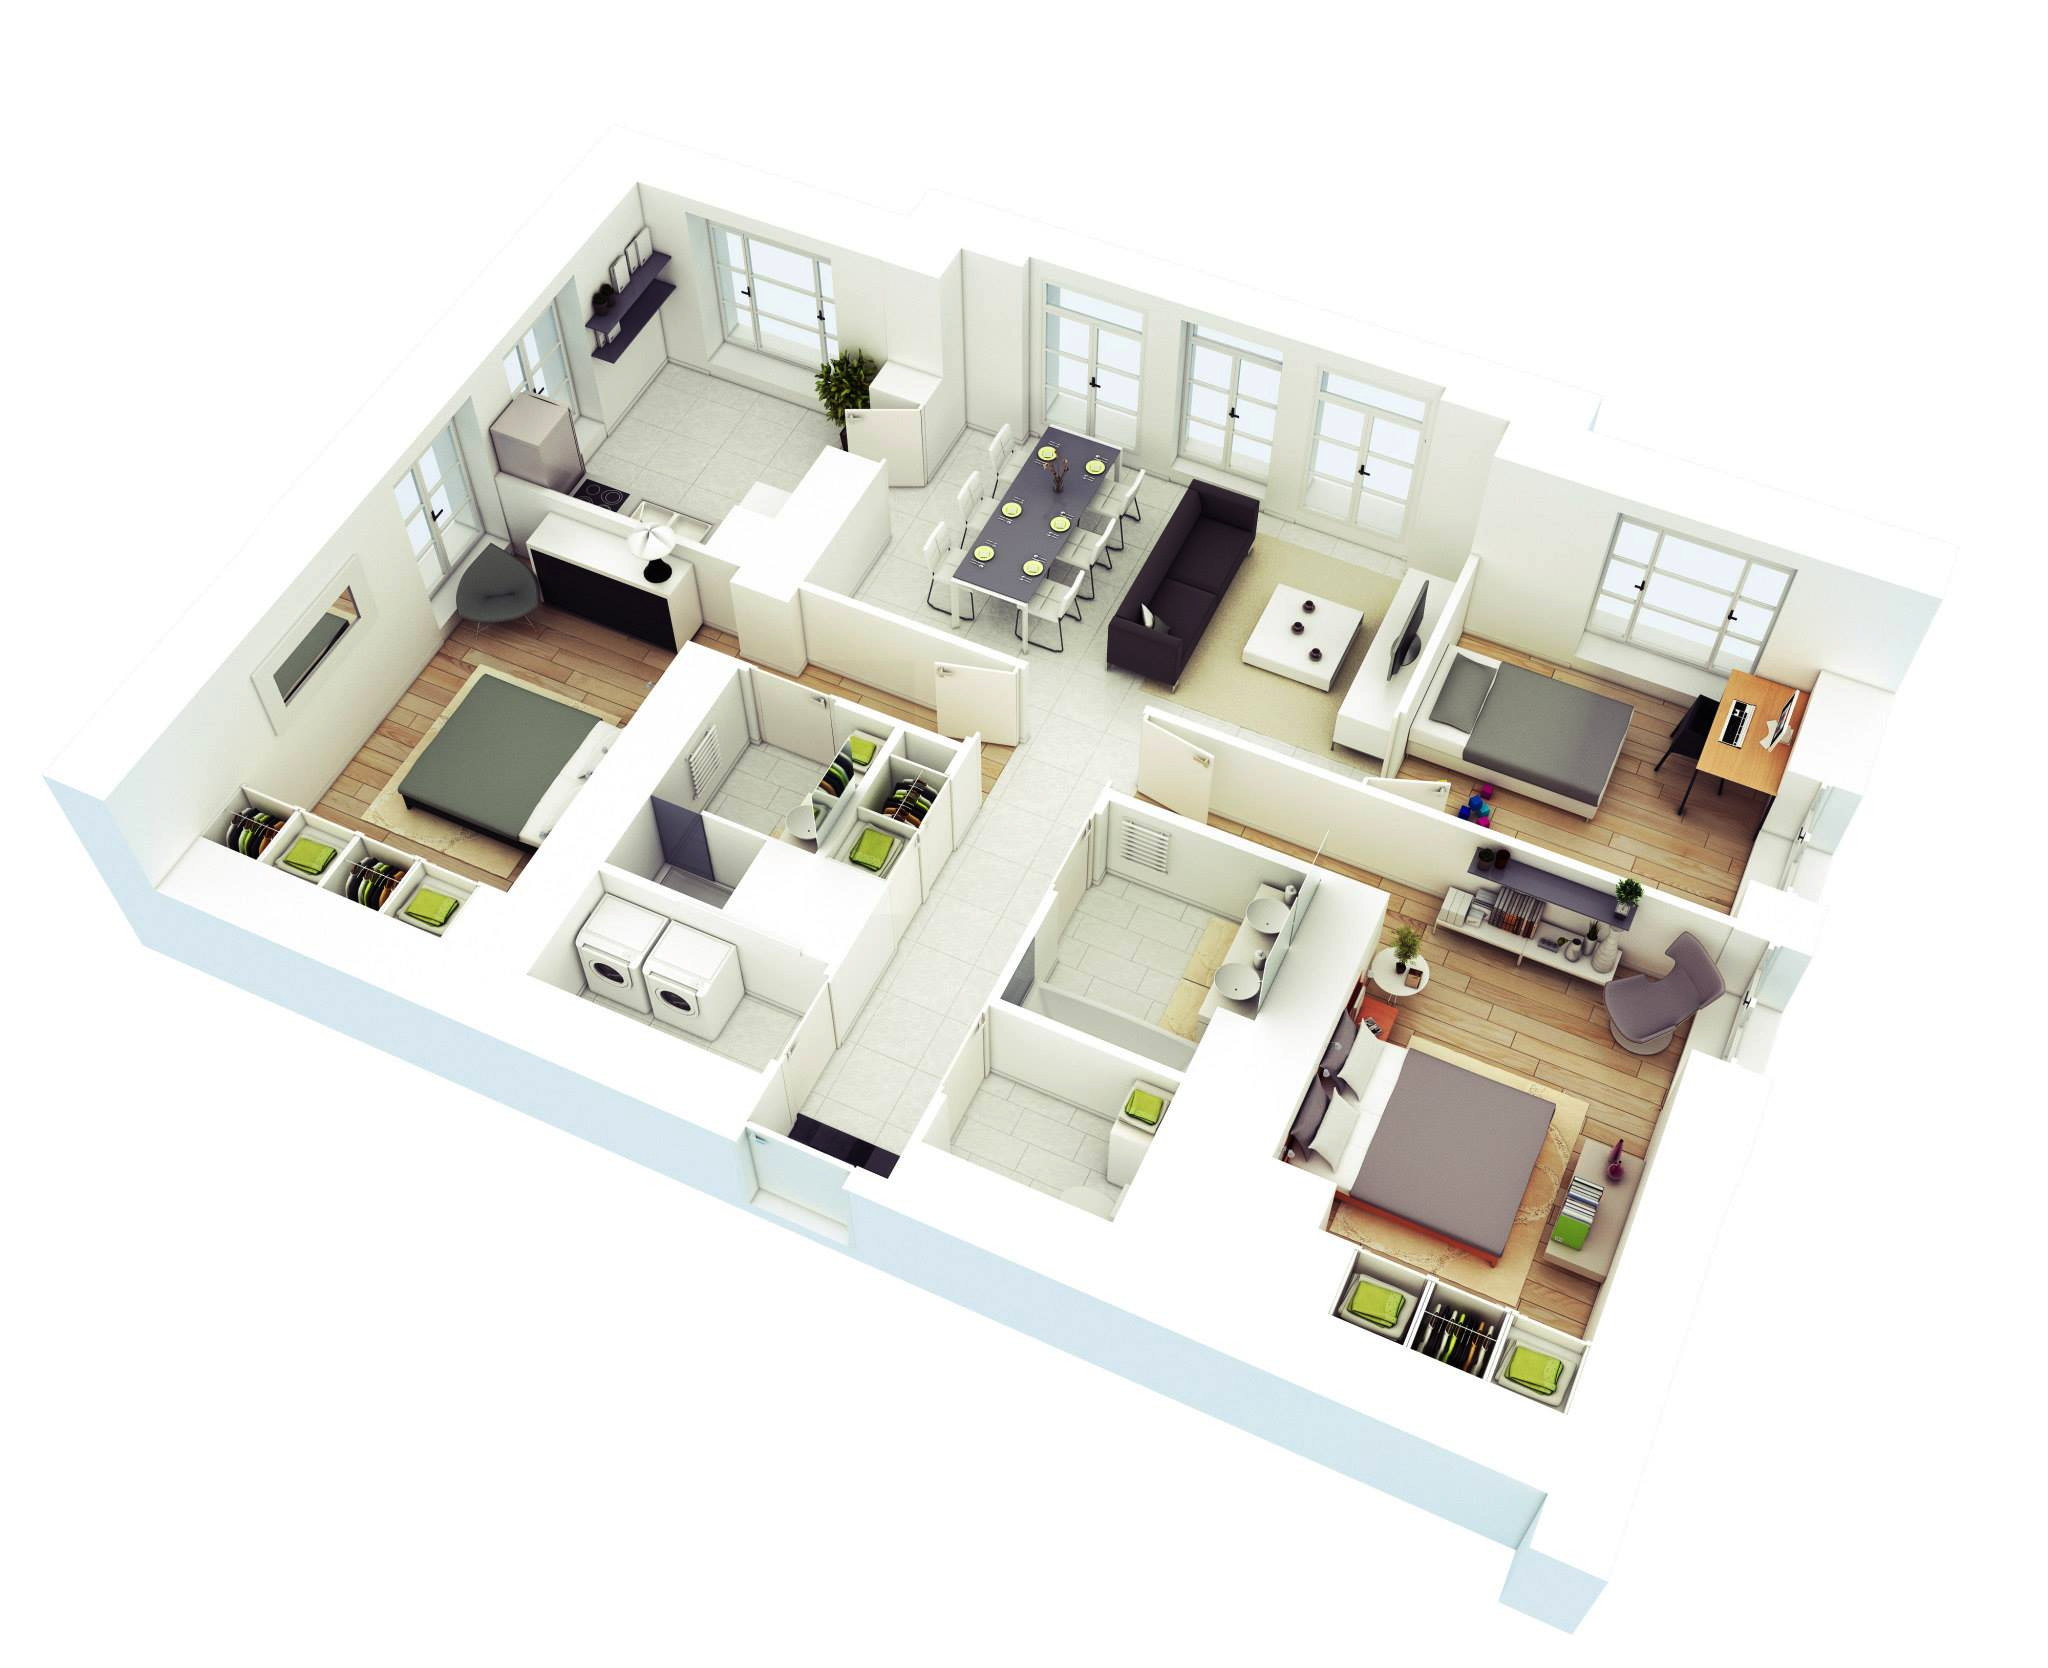 25 more 3 bedroom 3d floor plans House plans 3 bedroom 1 bathroom